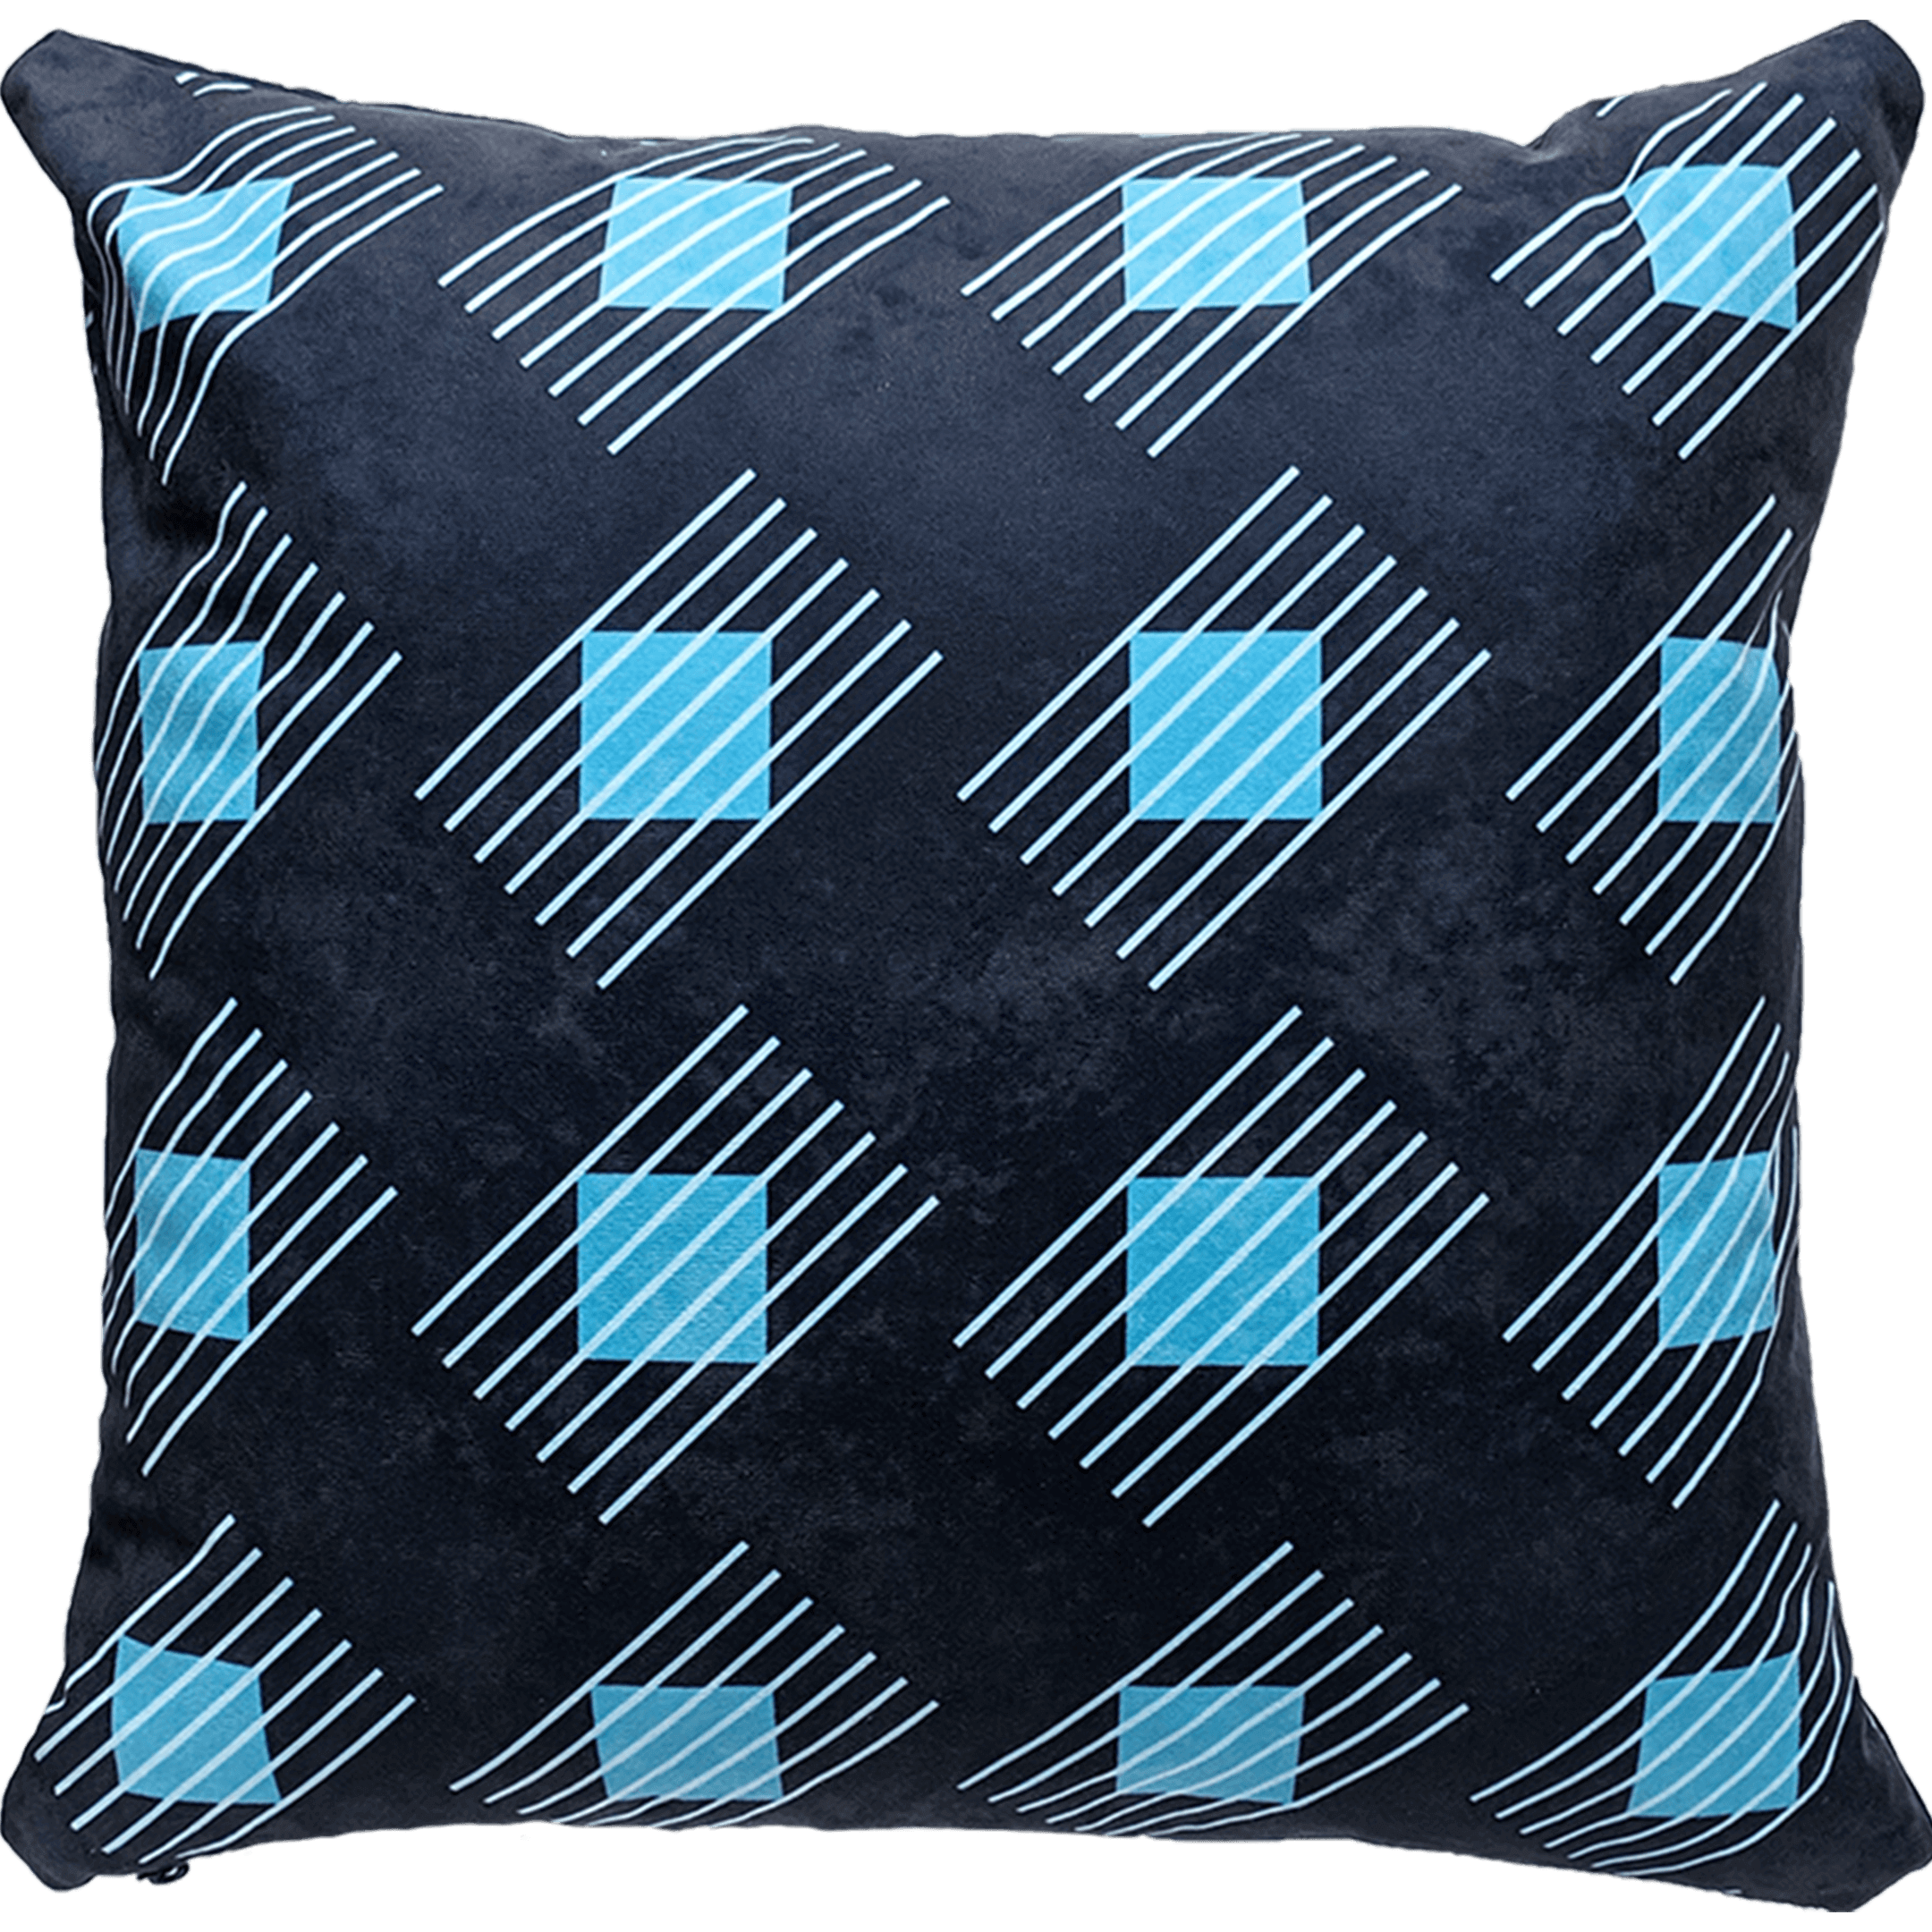 Patterned faux suede blue throw pillow. Sky blue diagonal lines, powder blue squares, navy background.